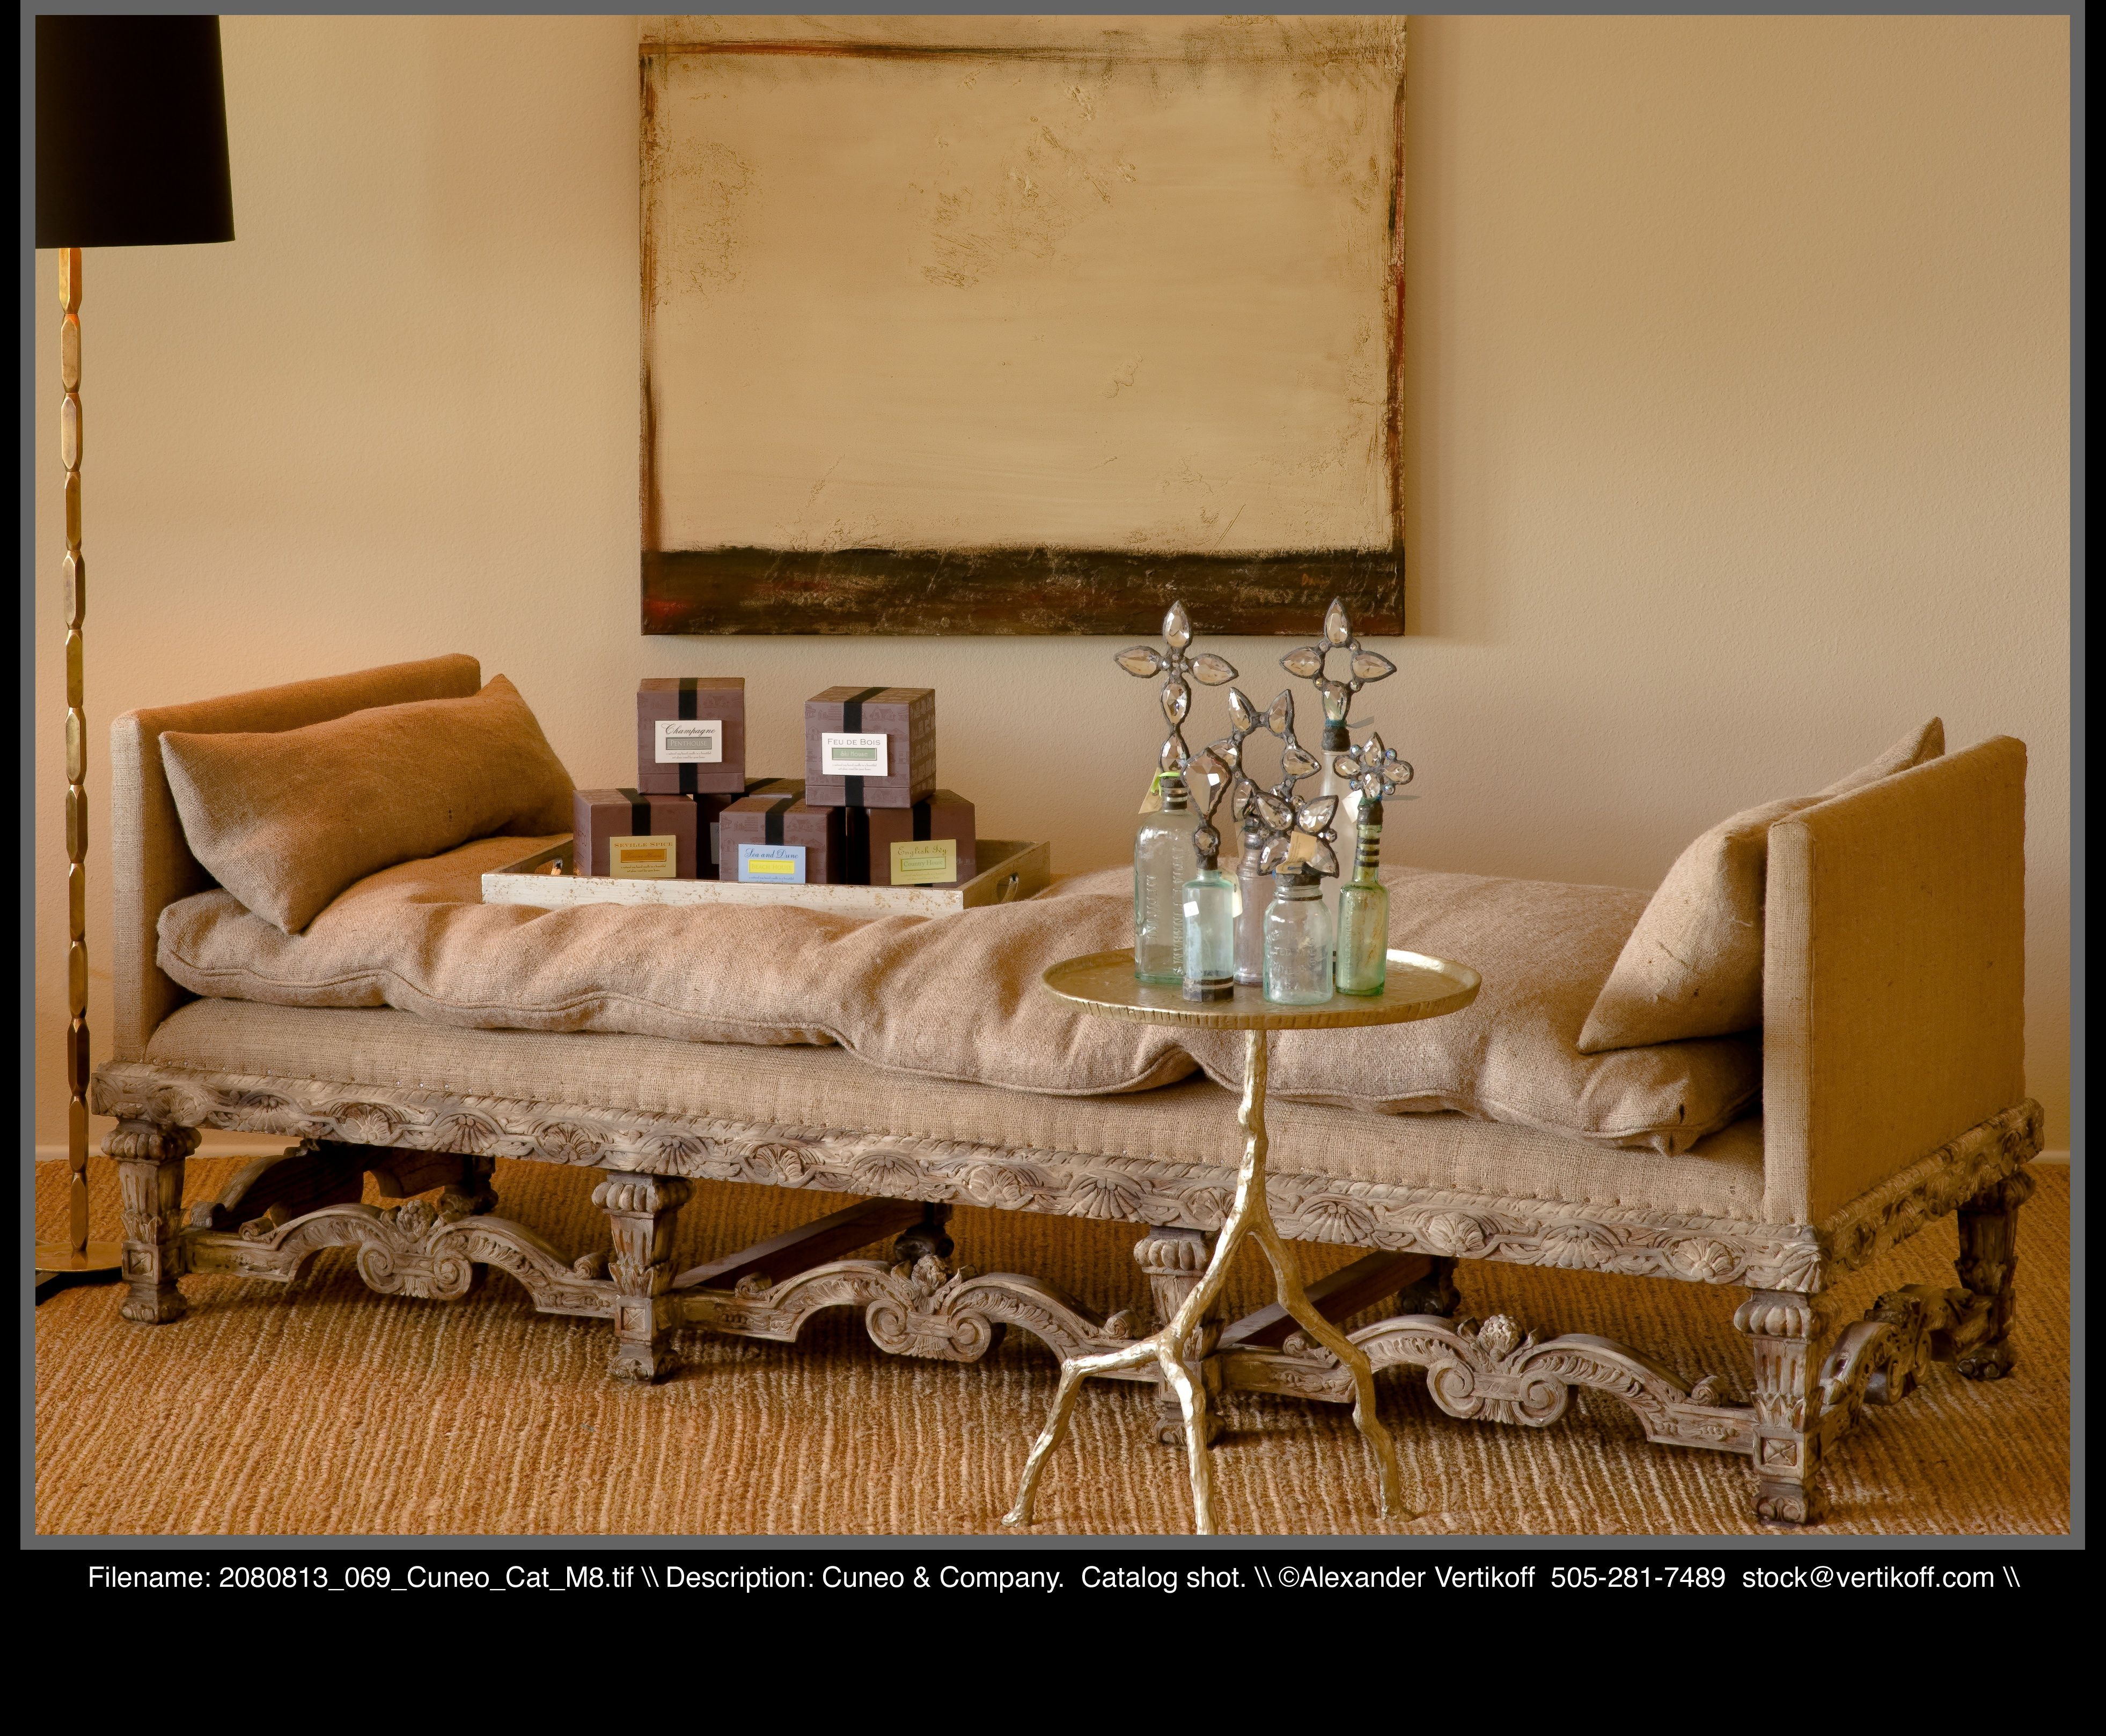 Italian Daybed From Cuneoandco